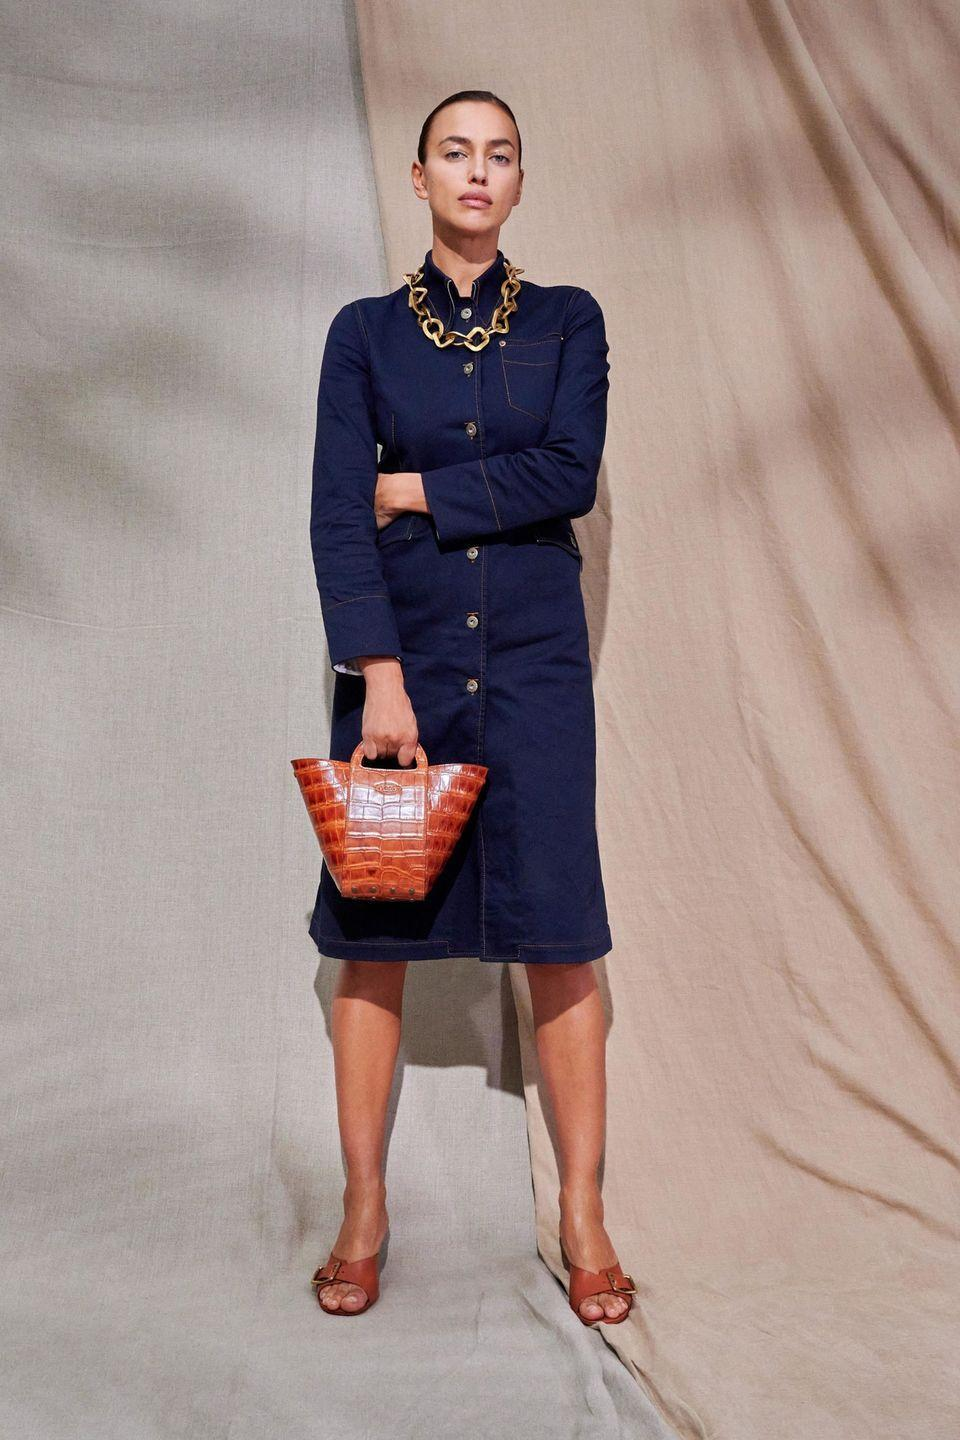 <p>Tod's creative director Walter Chiapponi was inspired by the outdoors for his latest collection. But not just any outdoors: the manicured grounds of Villa Necchi Campiglio—aka the incredibly elegant Italian Rationalist mansion in Luca Guadagnino's<em> I Am Love—</em>to be exact. So while we have the denims and khakis associated with long days spent outside, these looks have a decidedly polished Milanese vibe. It's rich but casual, a difficult to achieve balance that lands on target in louche white suiting, dark denim dresses, oversized leather jackets, and lace up boots. —<em>Kerry Pieri</em></p>